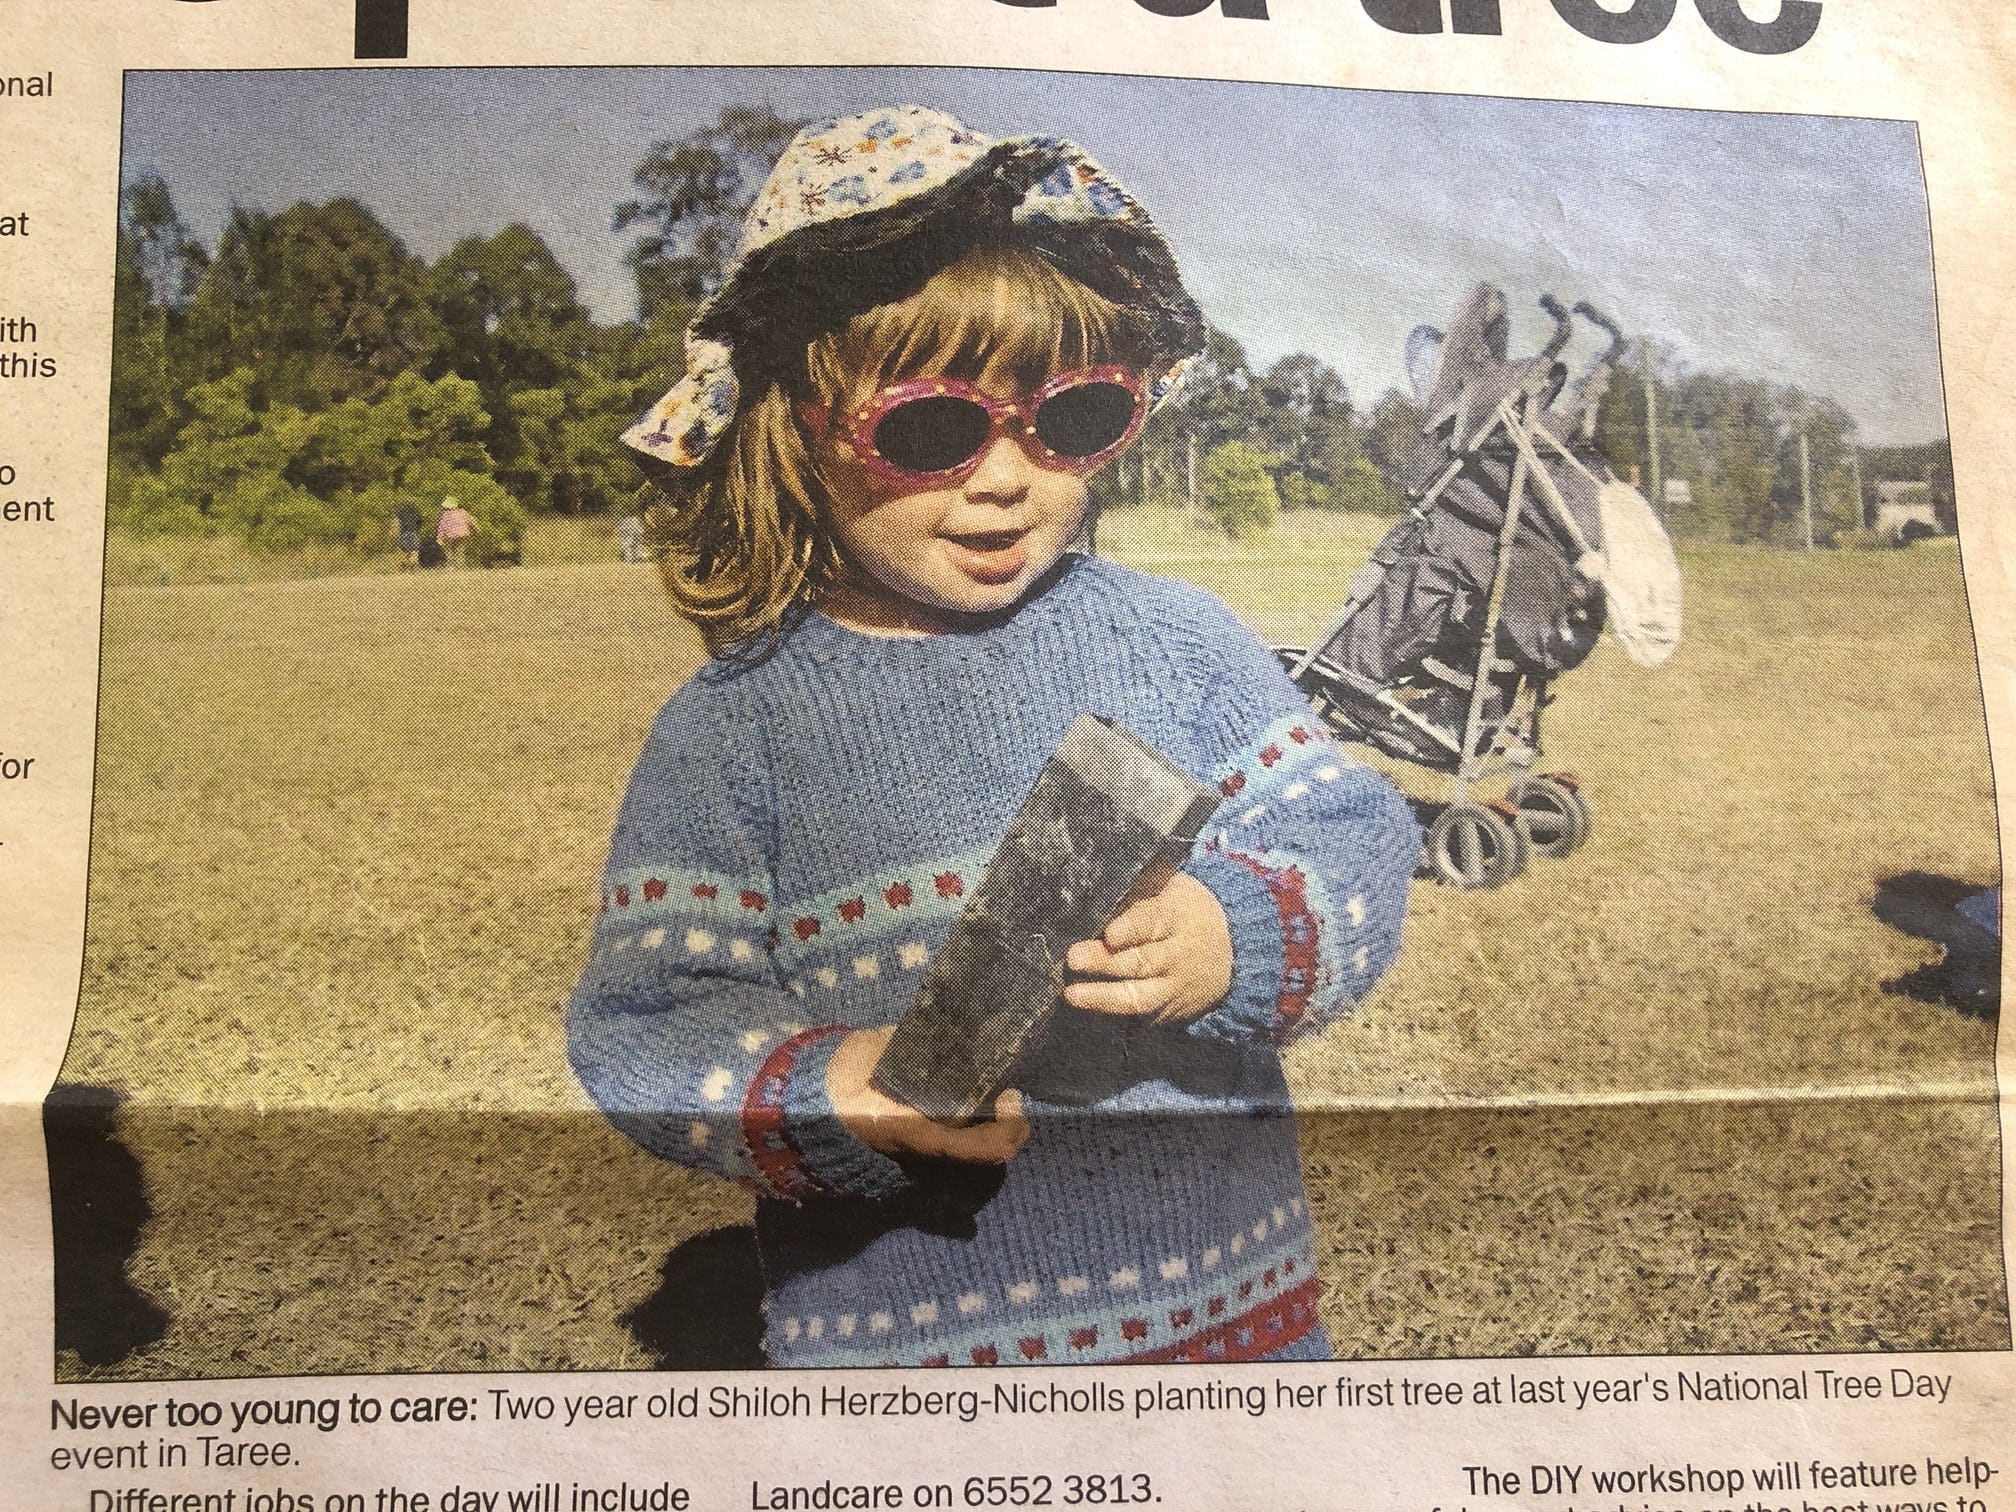 Shiloh at her first National Tree Day event on the front cover of Manning River Times.